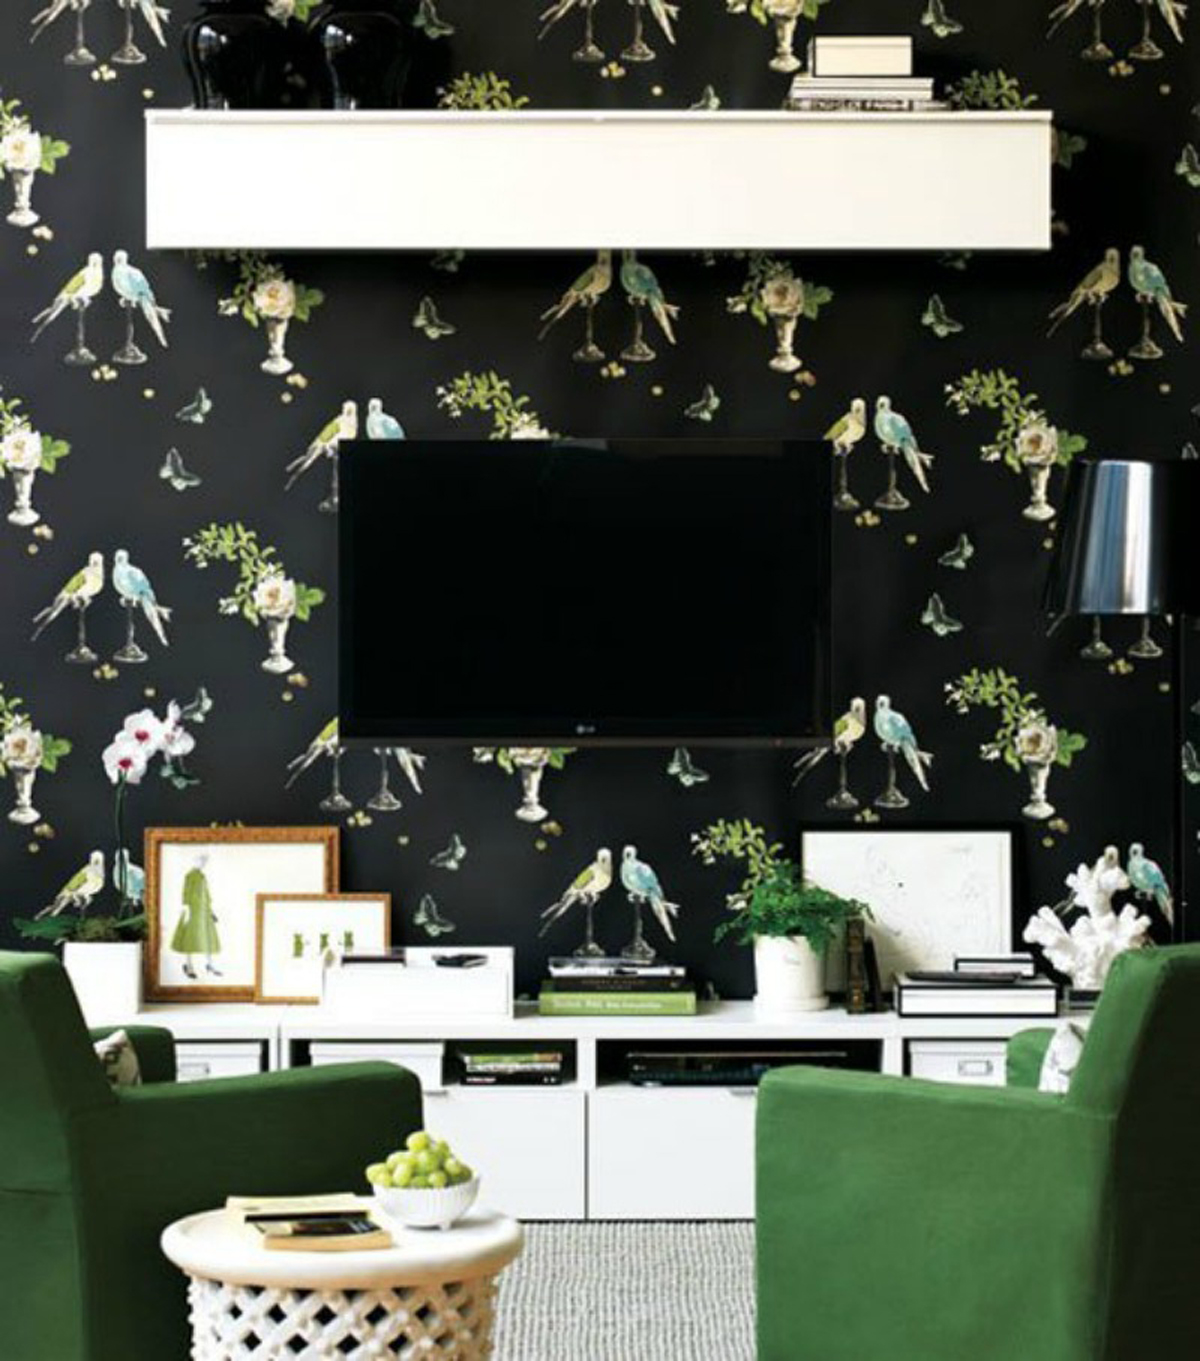 Living Room Design Dilemma: How To Disguise The TV